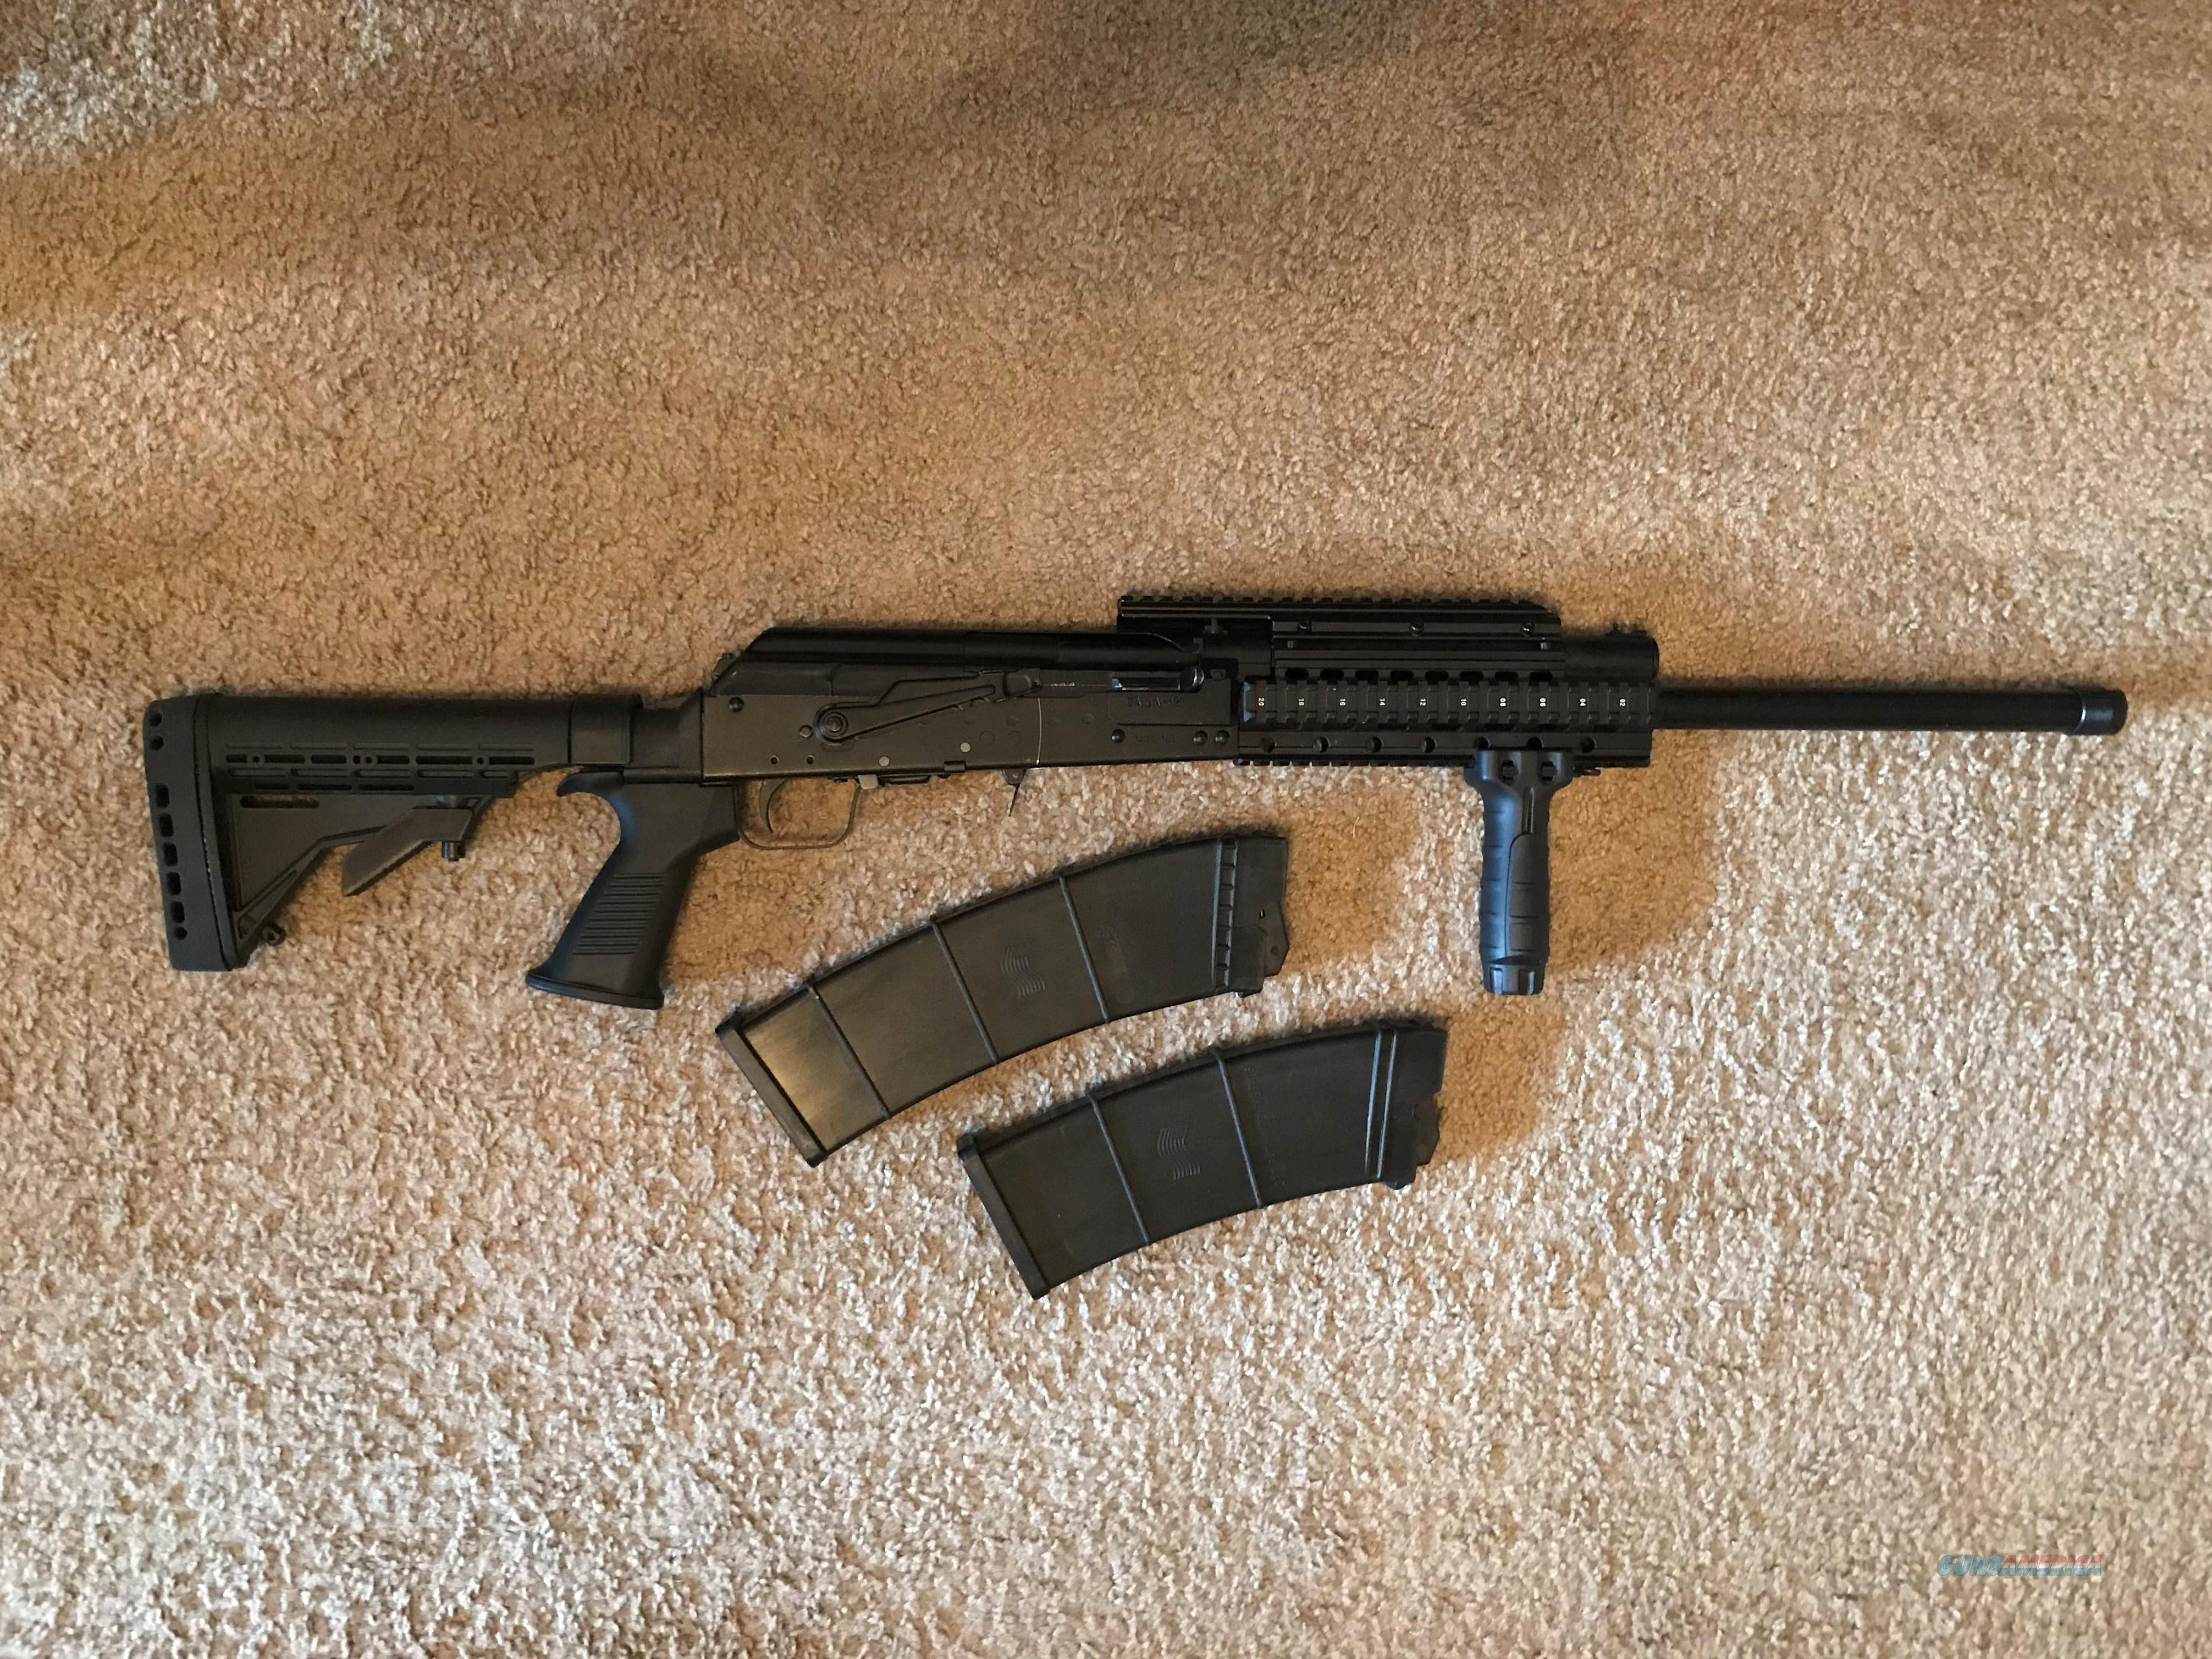 Kalashnikov Izhmash SAIGA 12 w/ Adjustable Stock  Guns > Shotguns > Kalashnikov USA Shotguns